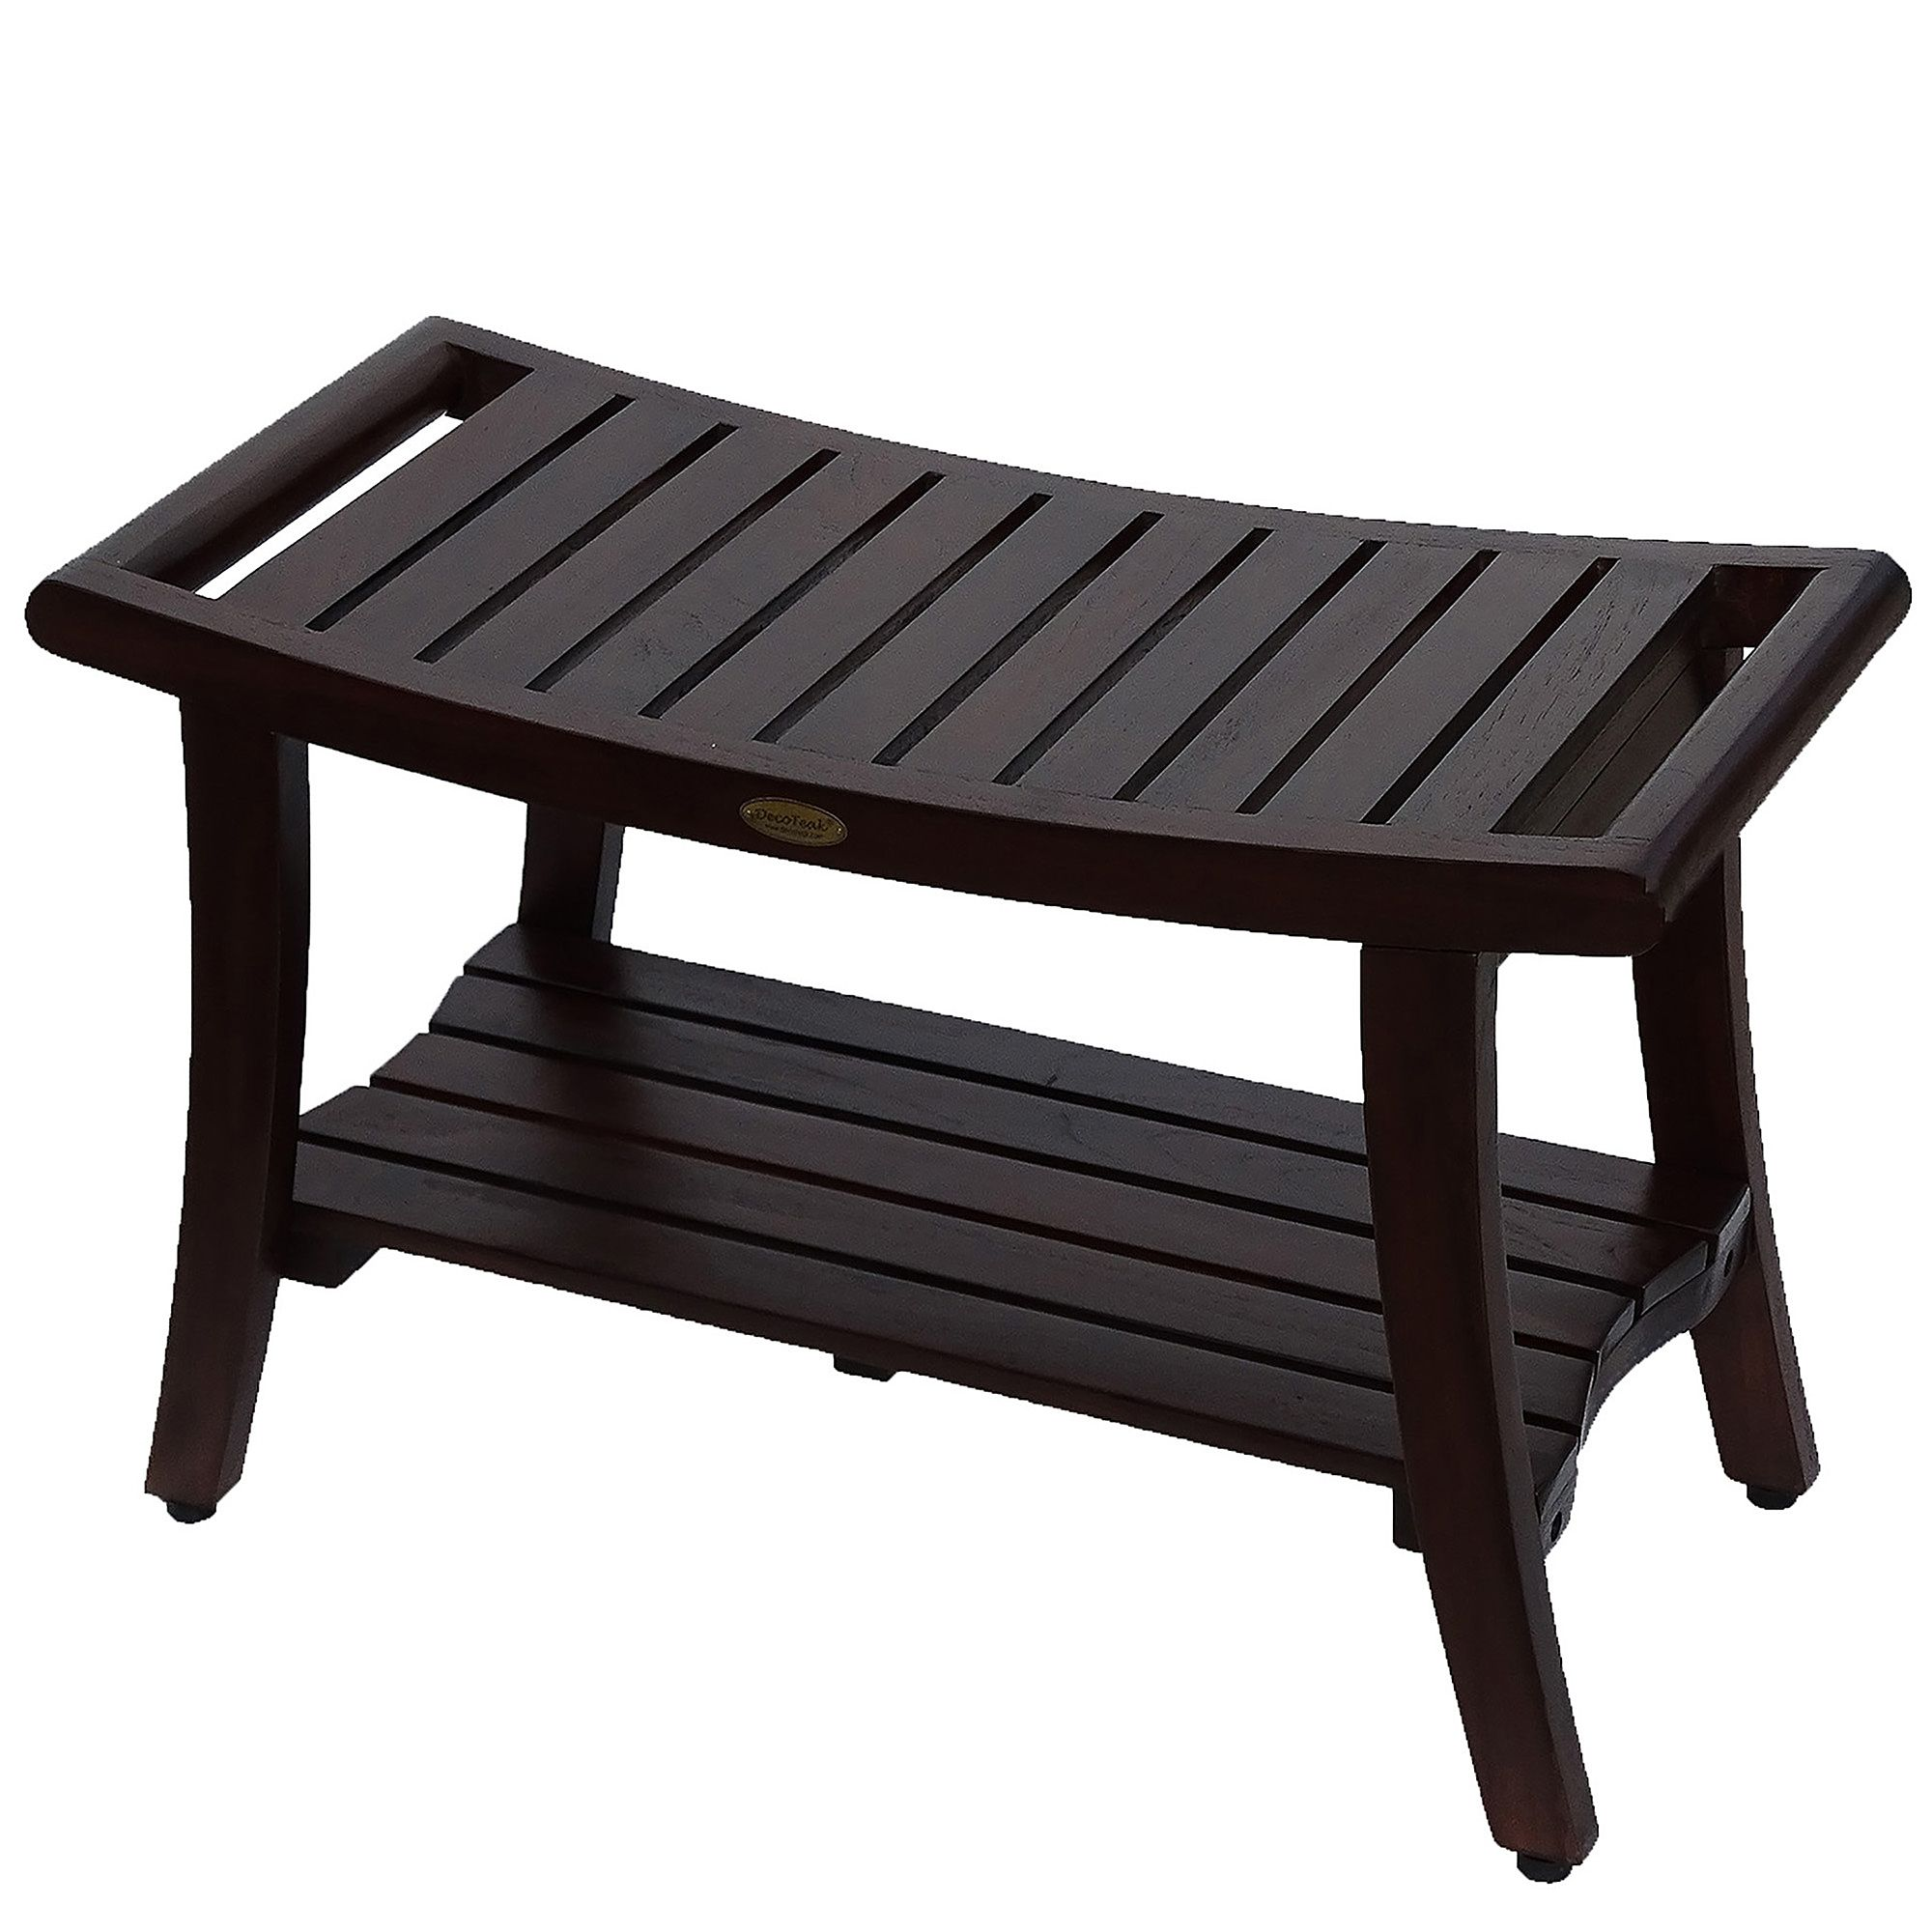 Harmony 30 Inch Teak Bench With Shelf And Liftaide Arms Teak